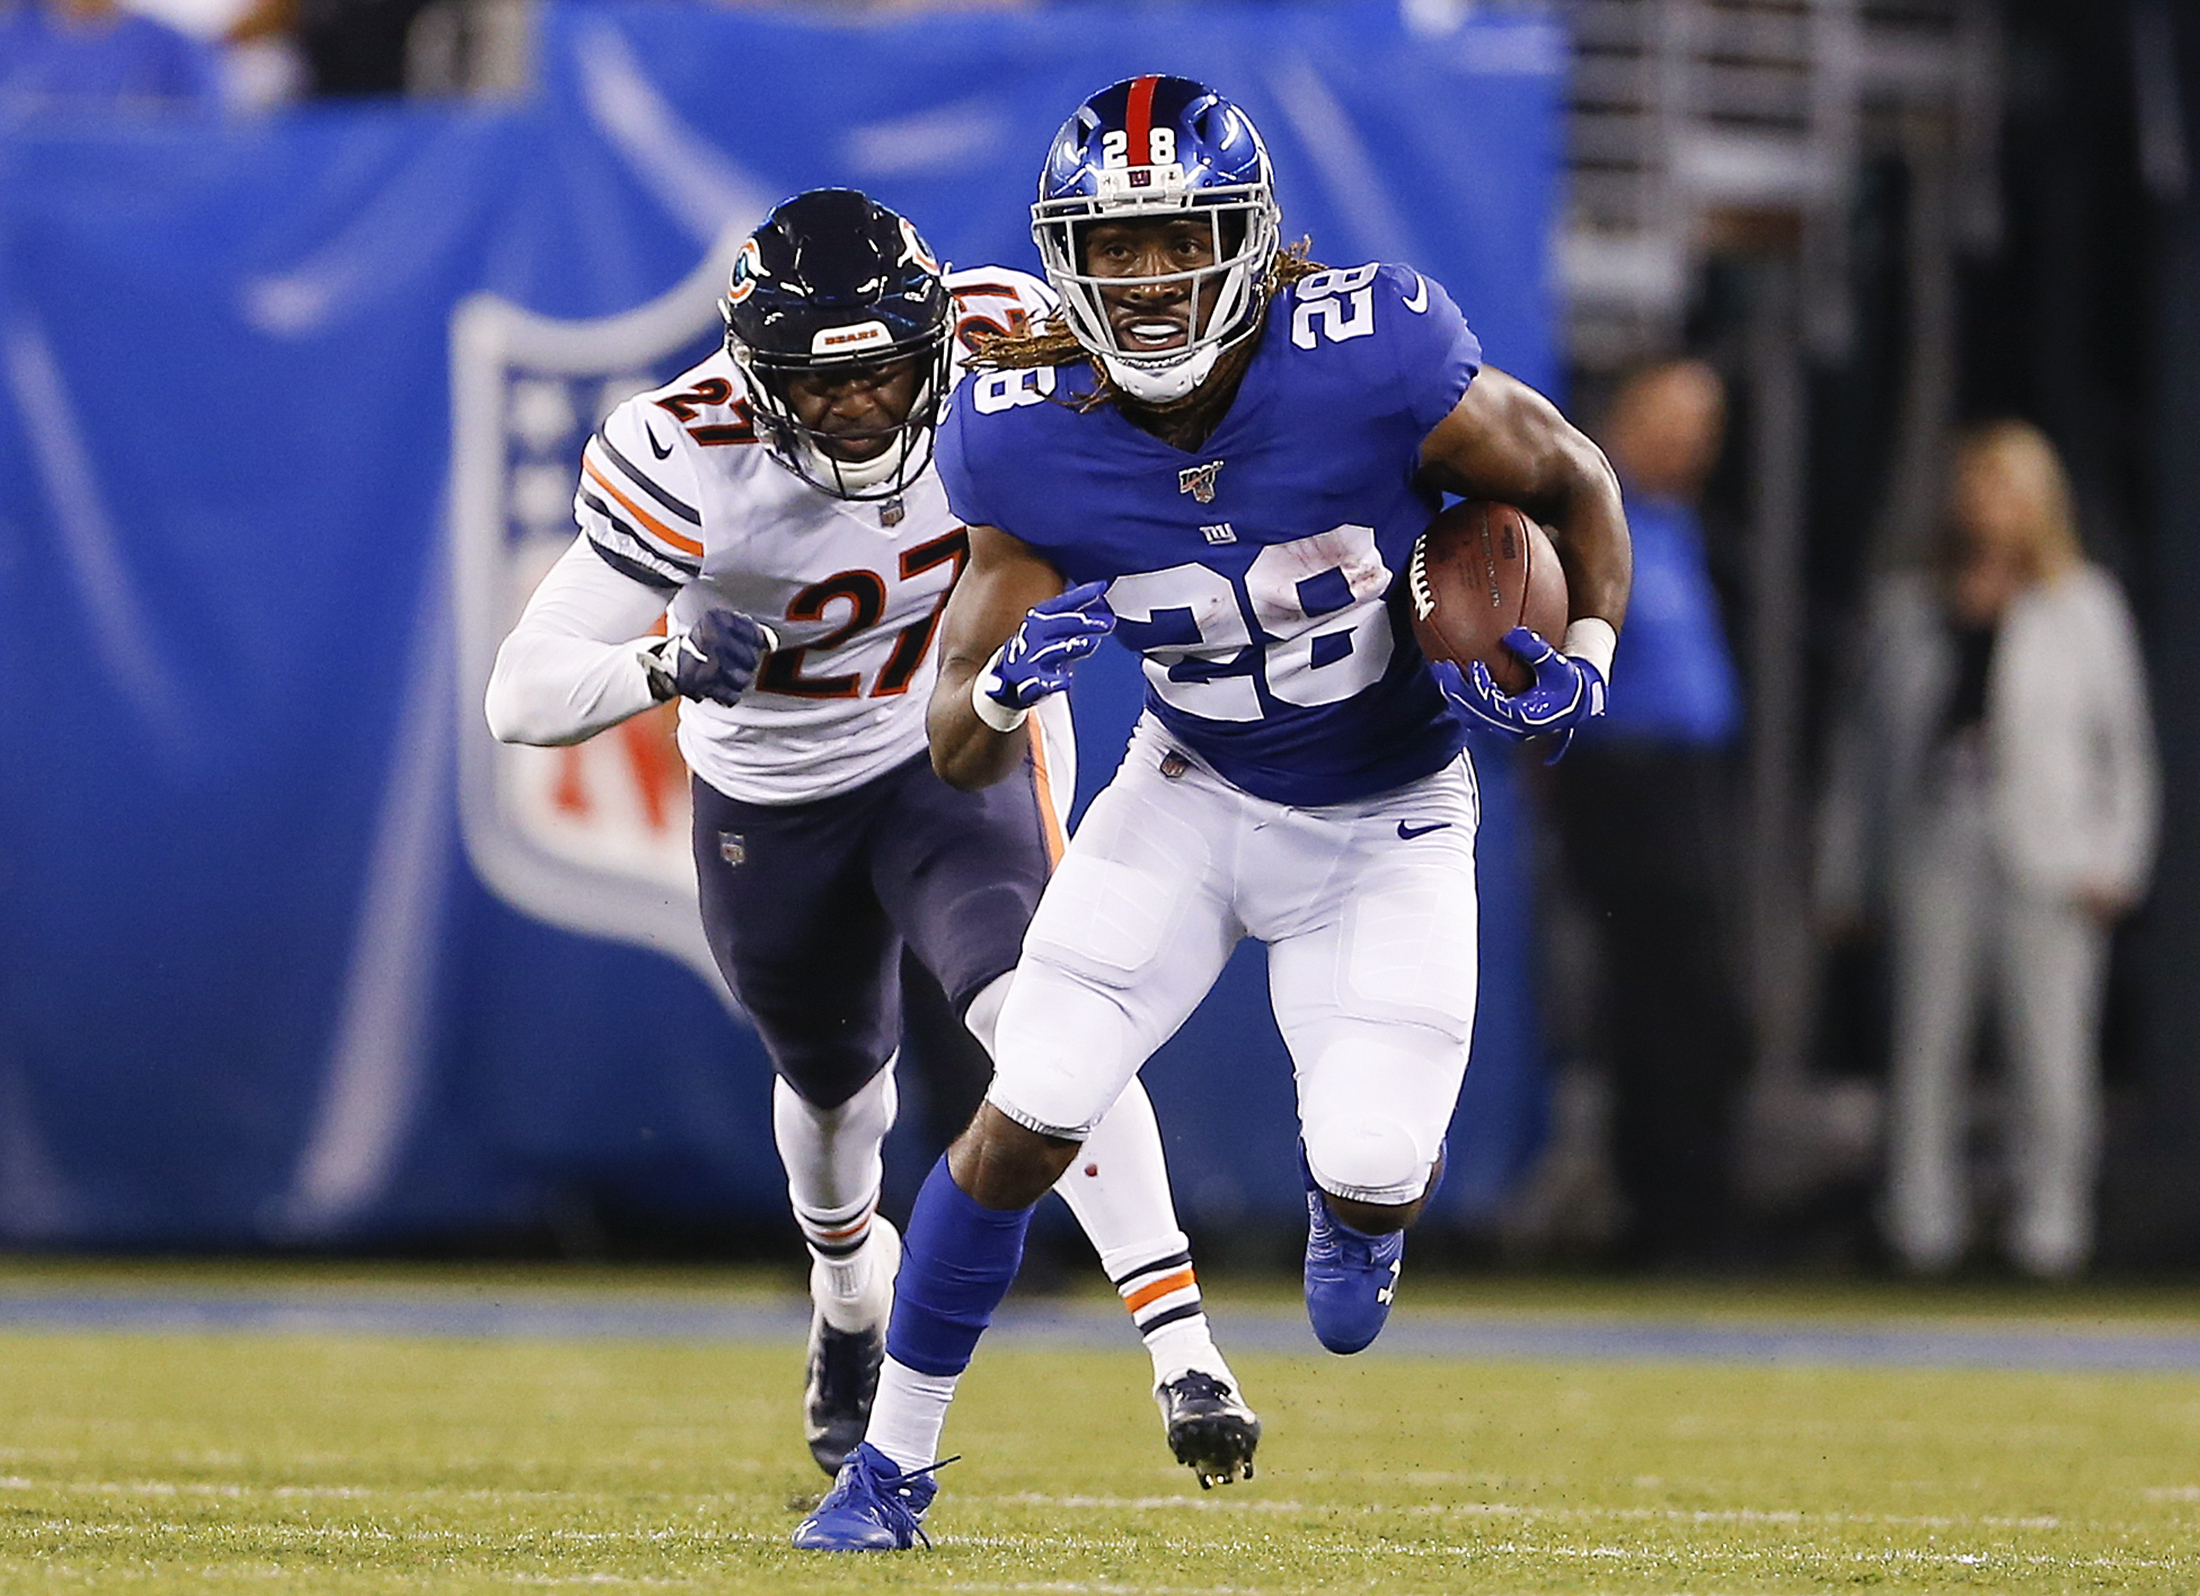 Detroit Lions waive RB Paul Perkins, awarded RB Tra Carson from Packers